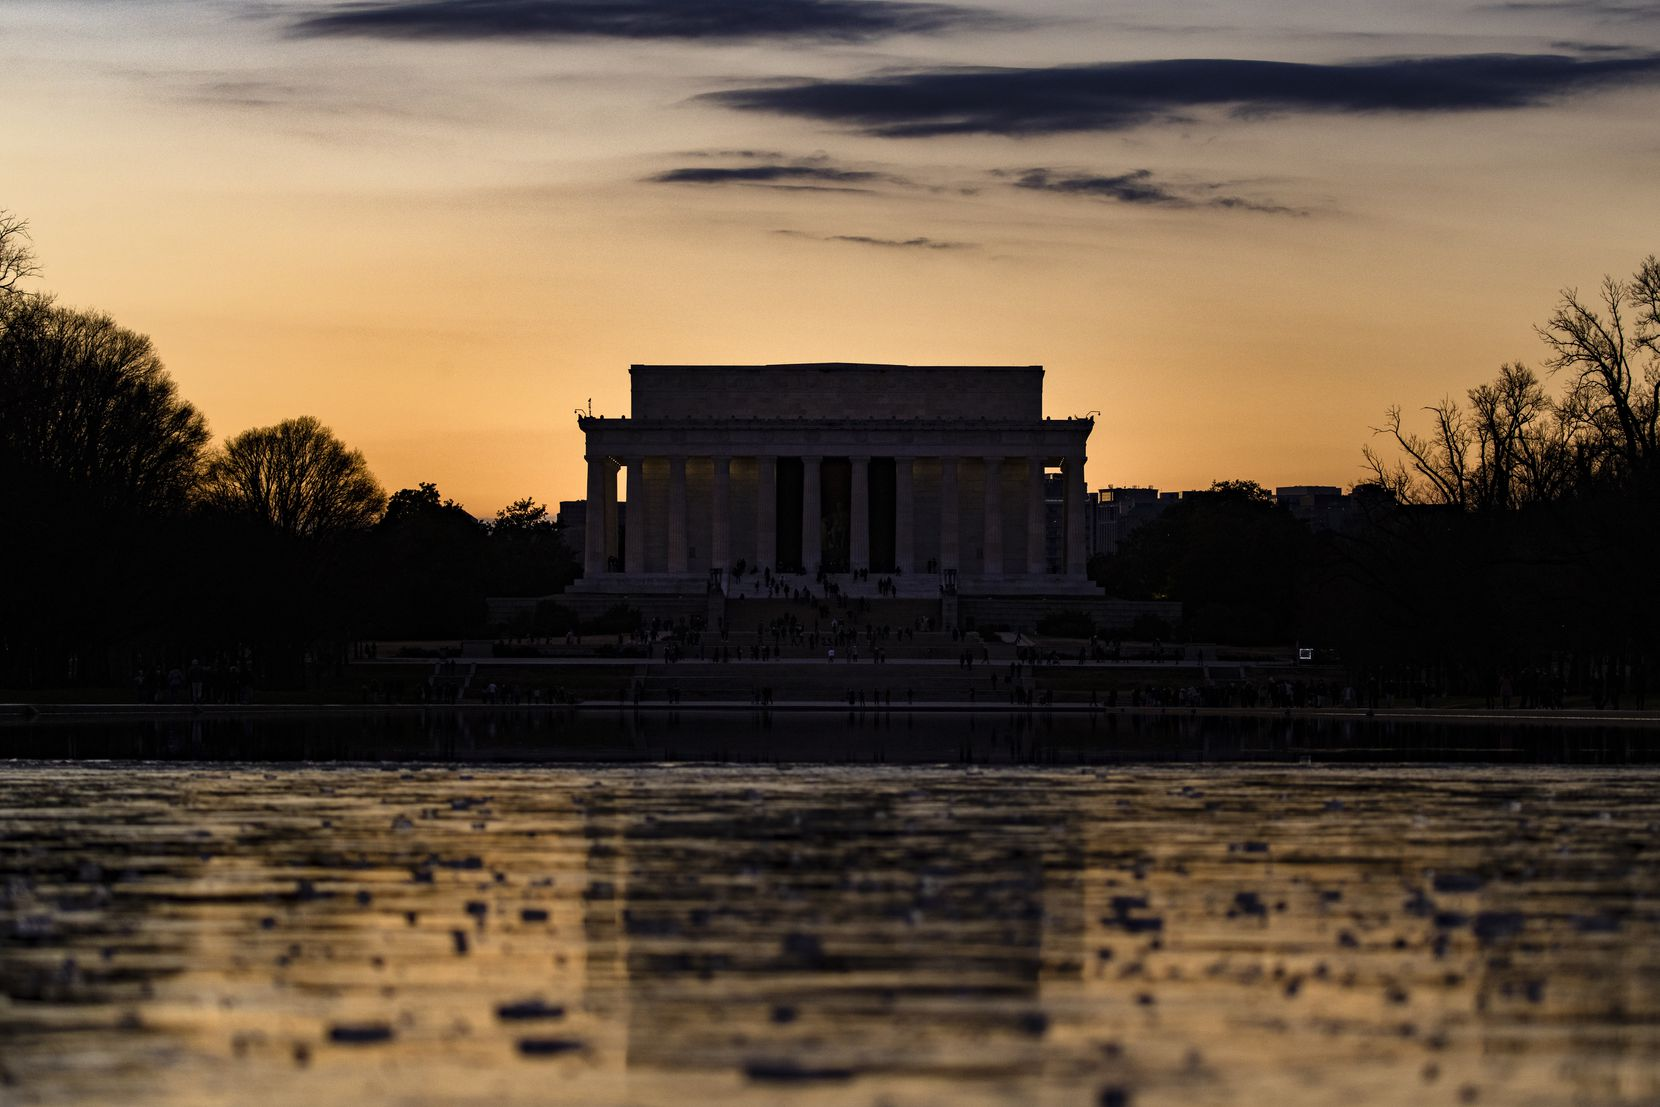 The Lincoln Memorial is seen across the Reflecting Pool at sunset on Saturday, Dec. 26, 2020, in Washington, D.C.